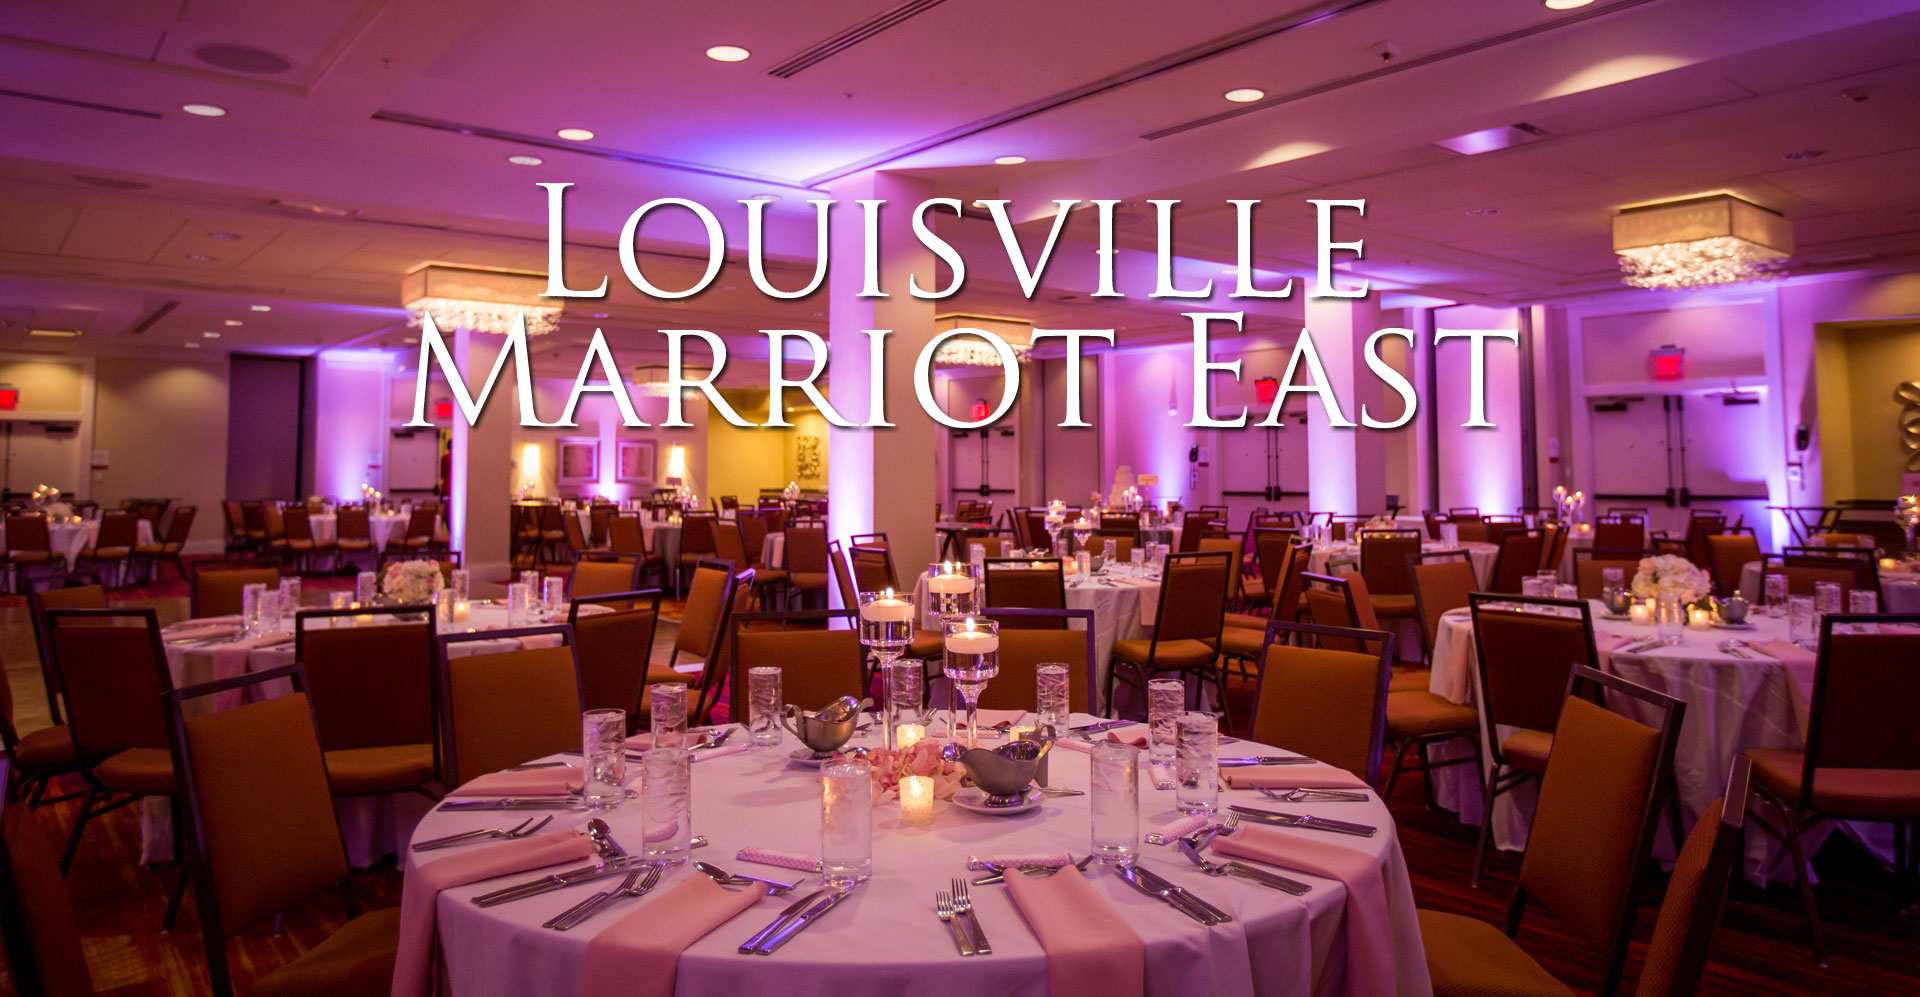 Louisville Marriott East Wedding Photo